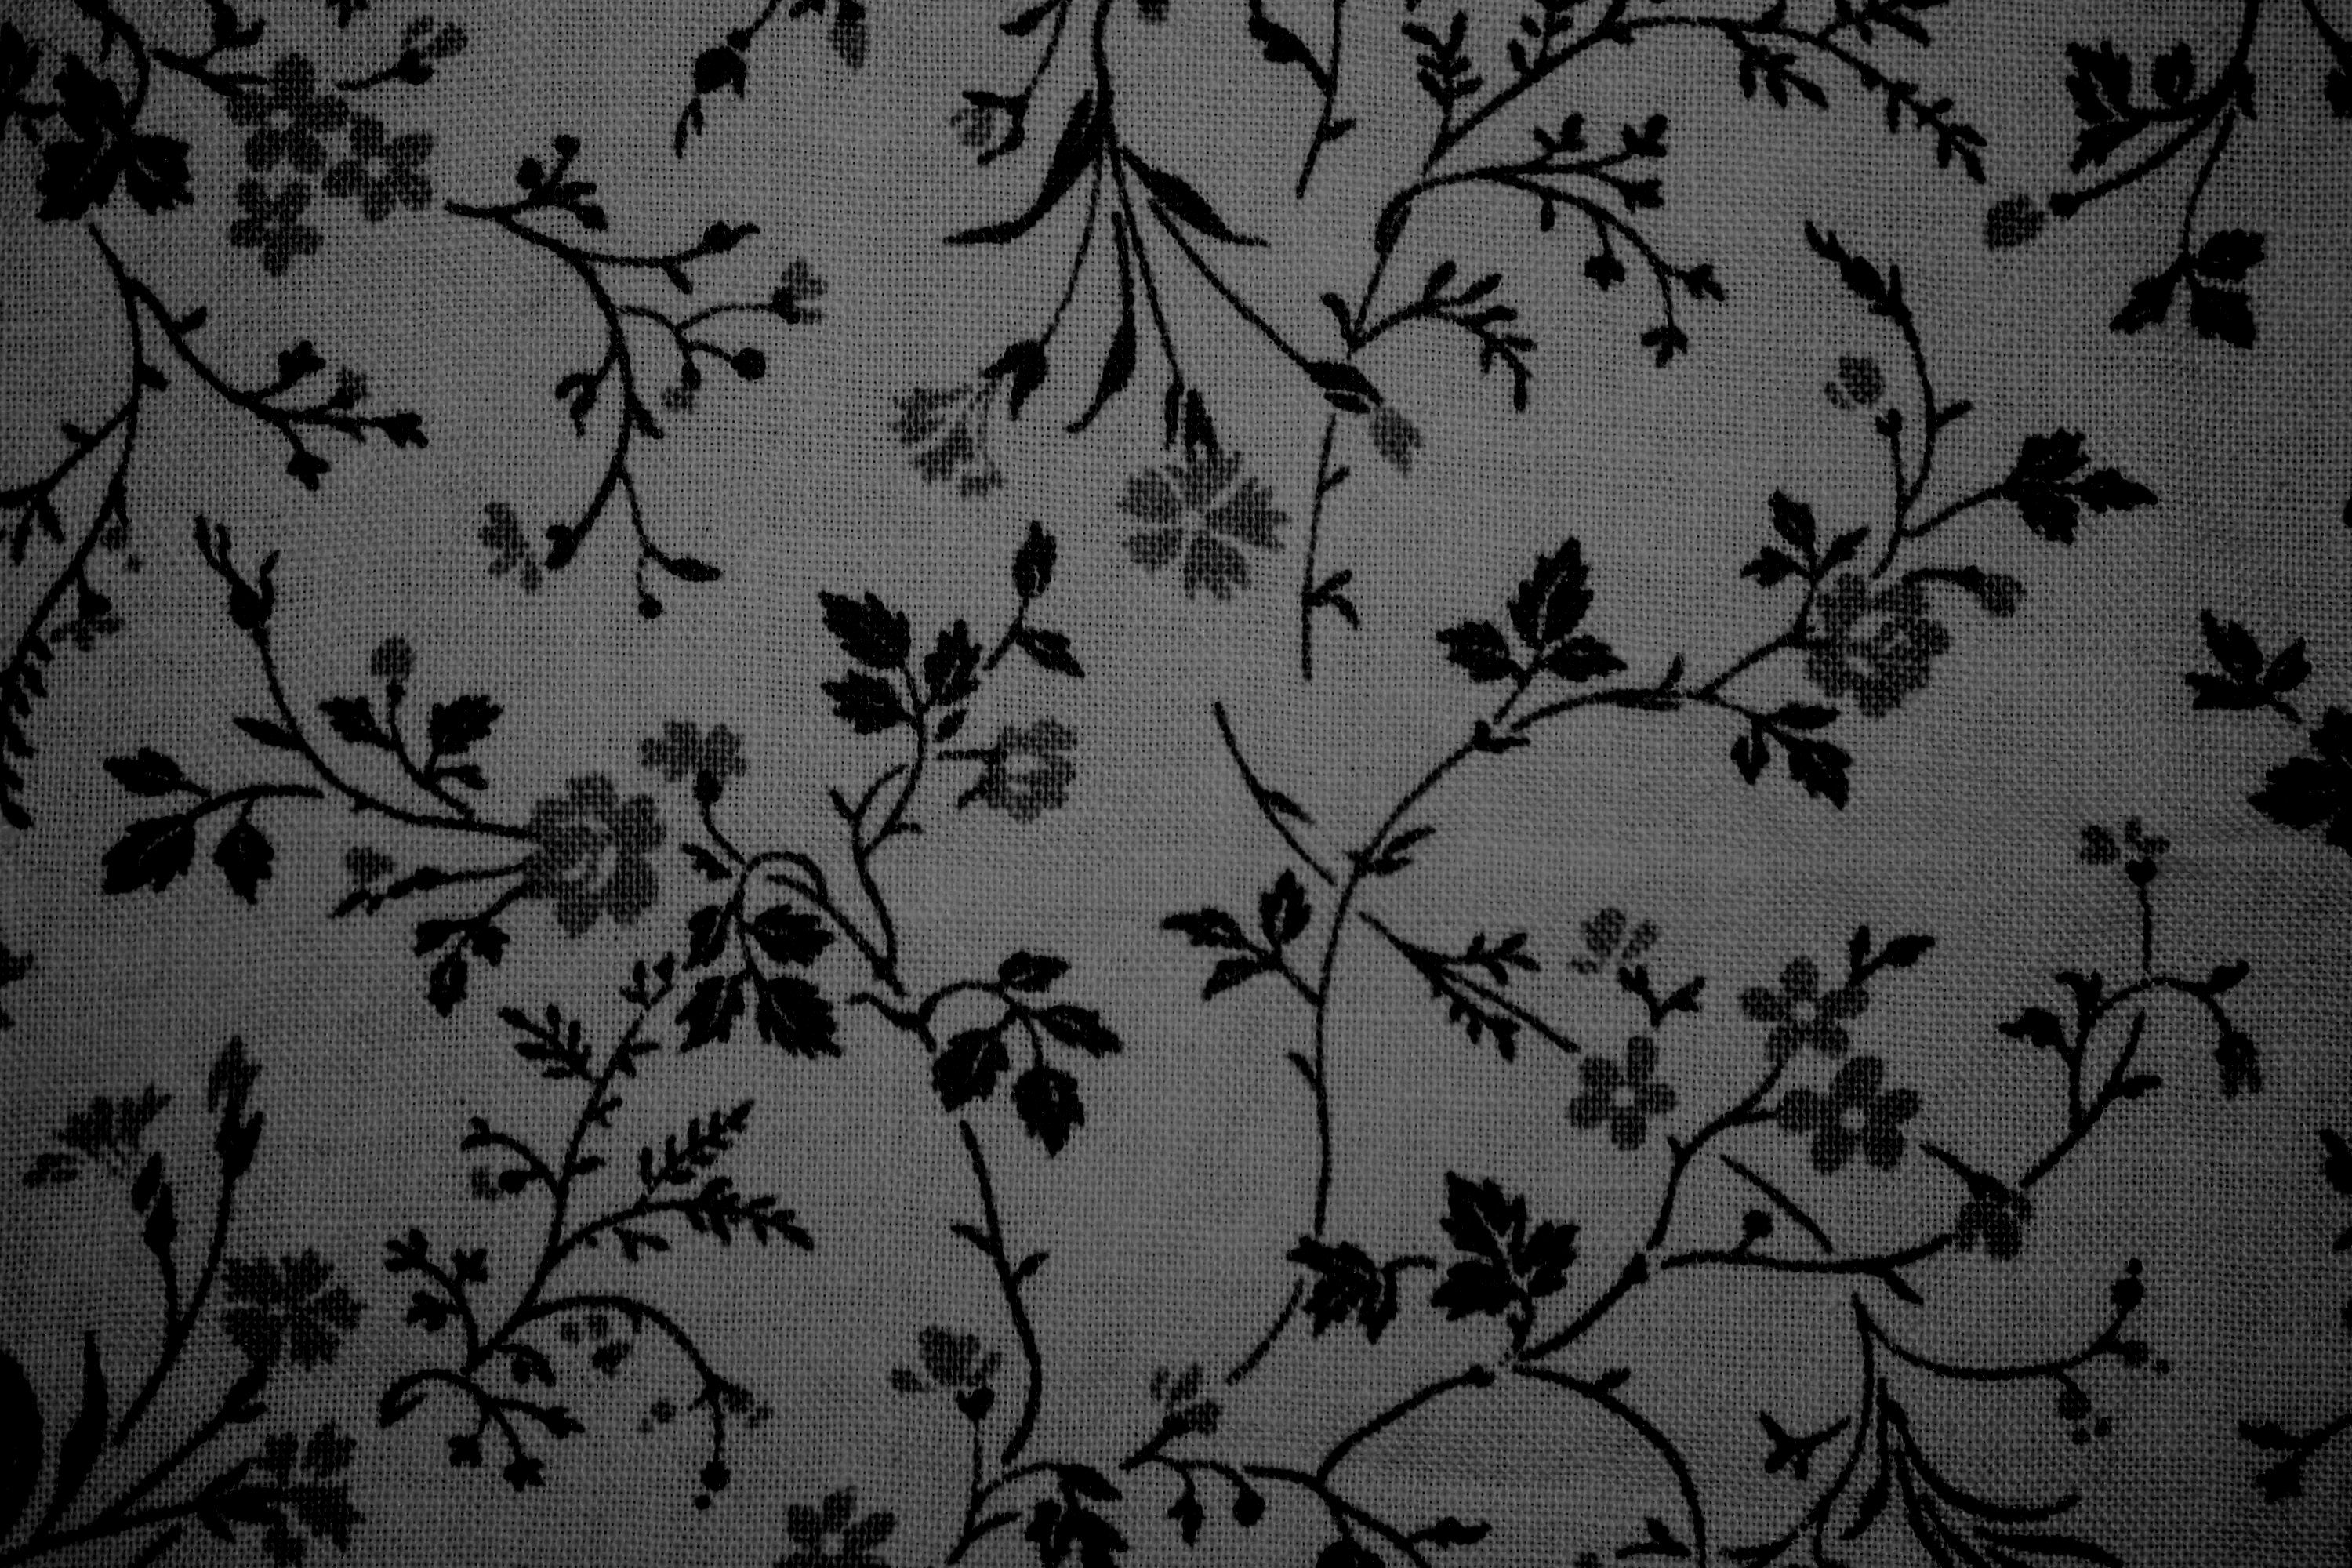 Black On Gray Floral Print Fabric Texture With Images Floral